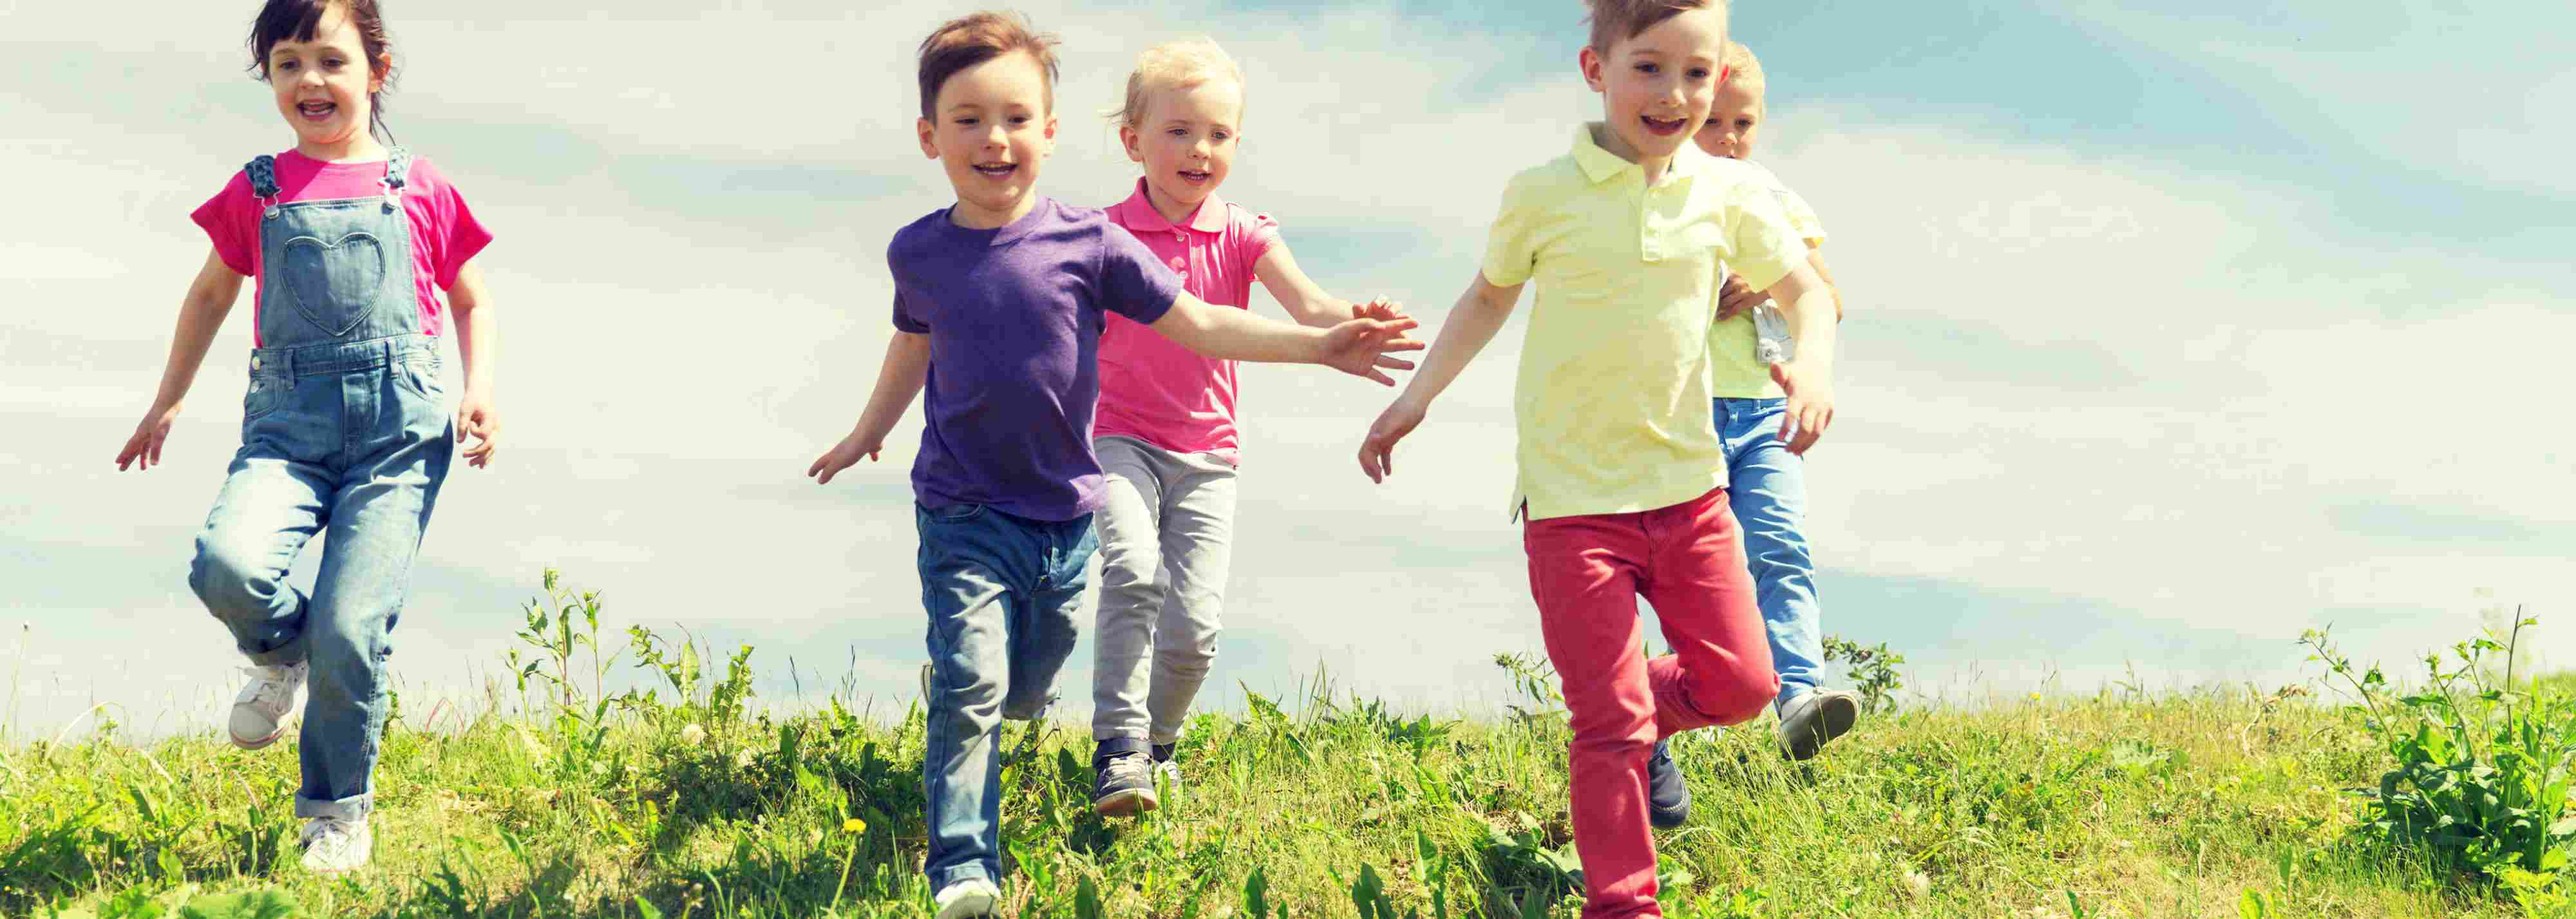 Kids-at-Max-Does-My-Child-Have-Attention-Deficit-Hyperactive-Disorder